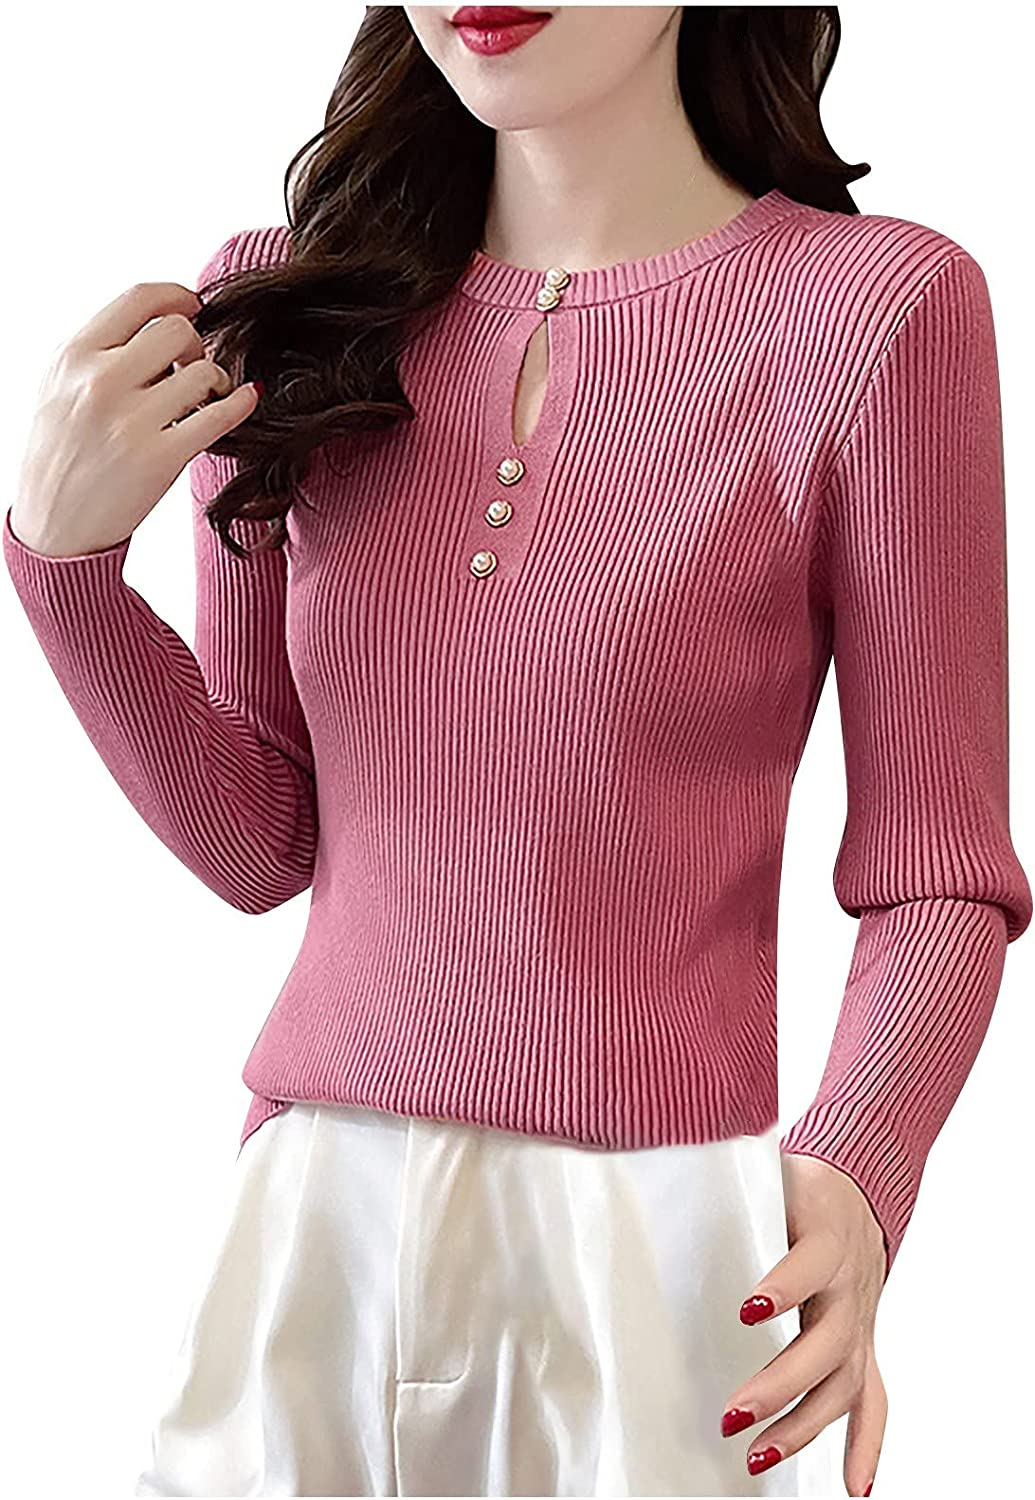 A2A Womens Henley Shirts Long Sleeve V Neck Ribbed Button Down Knit Sweater Fitted Tops Winter Wear Sweater Bottoming Shirt